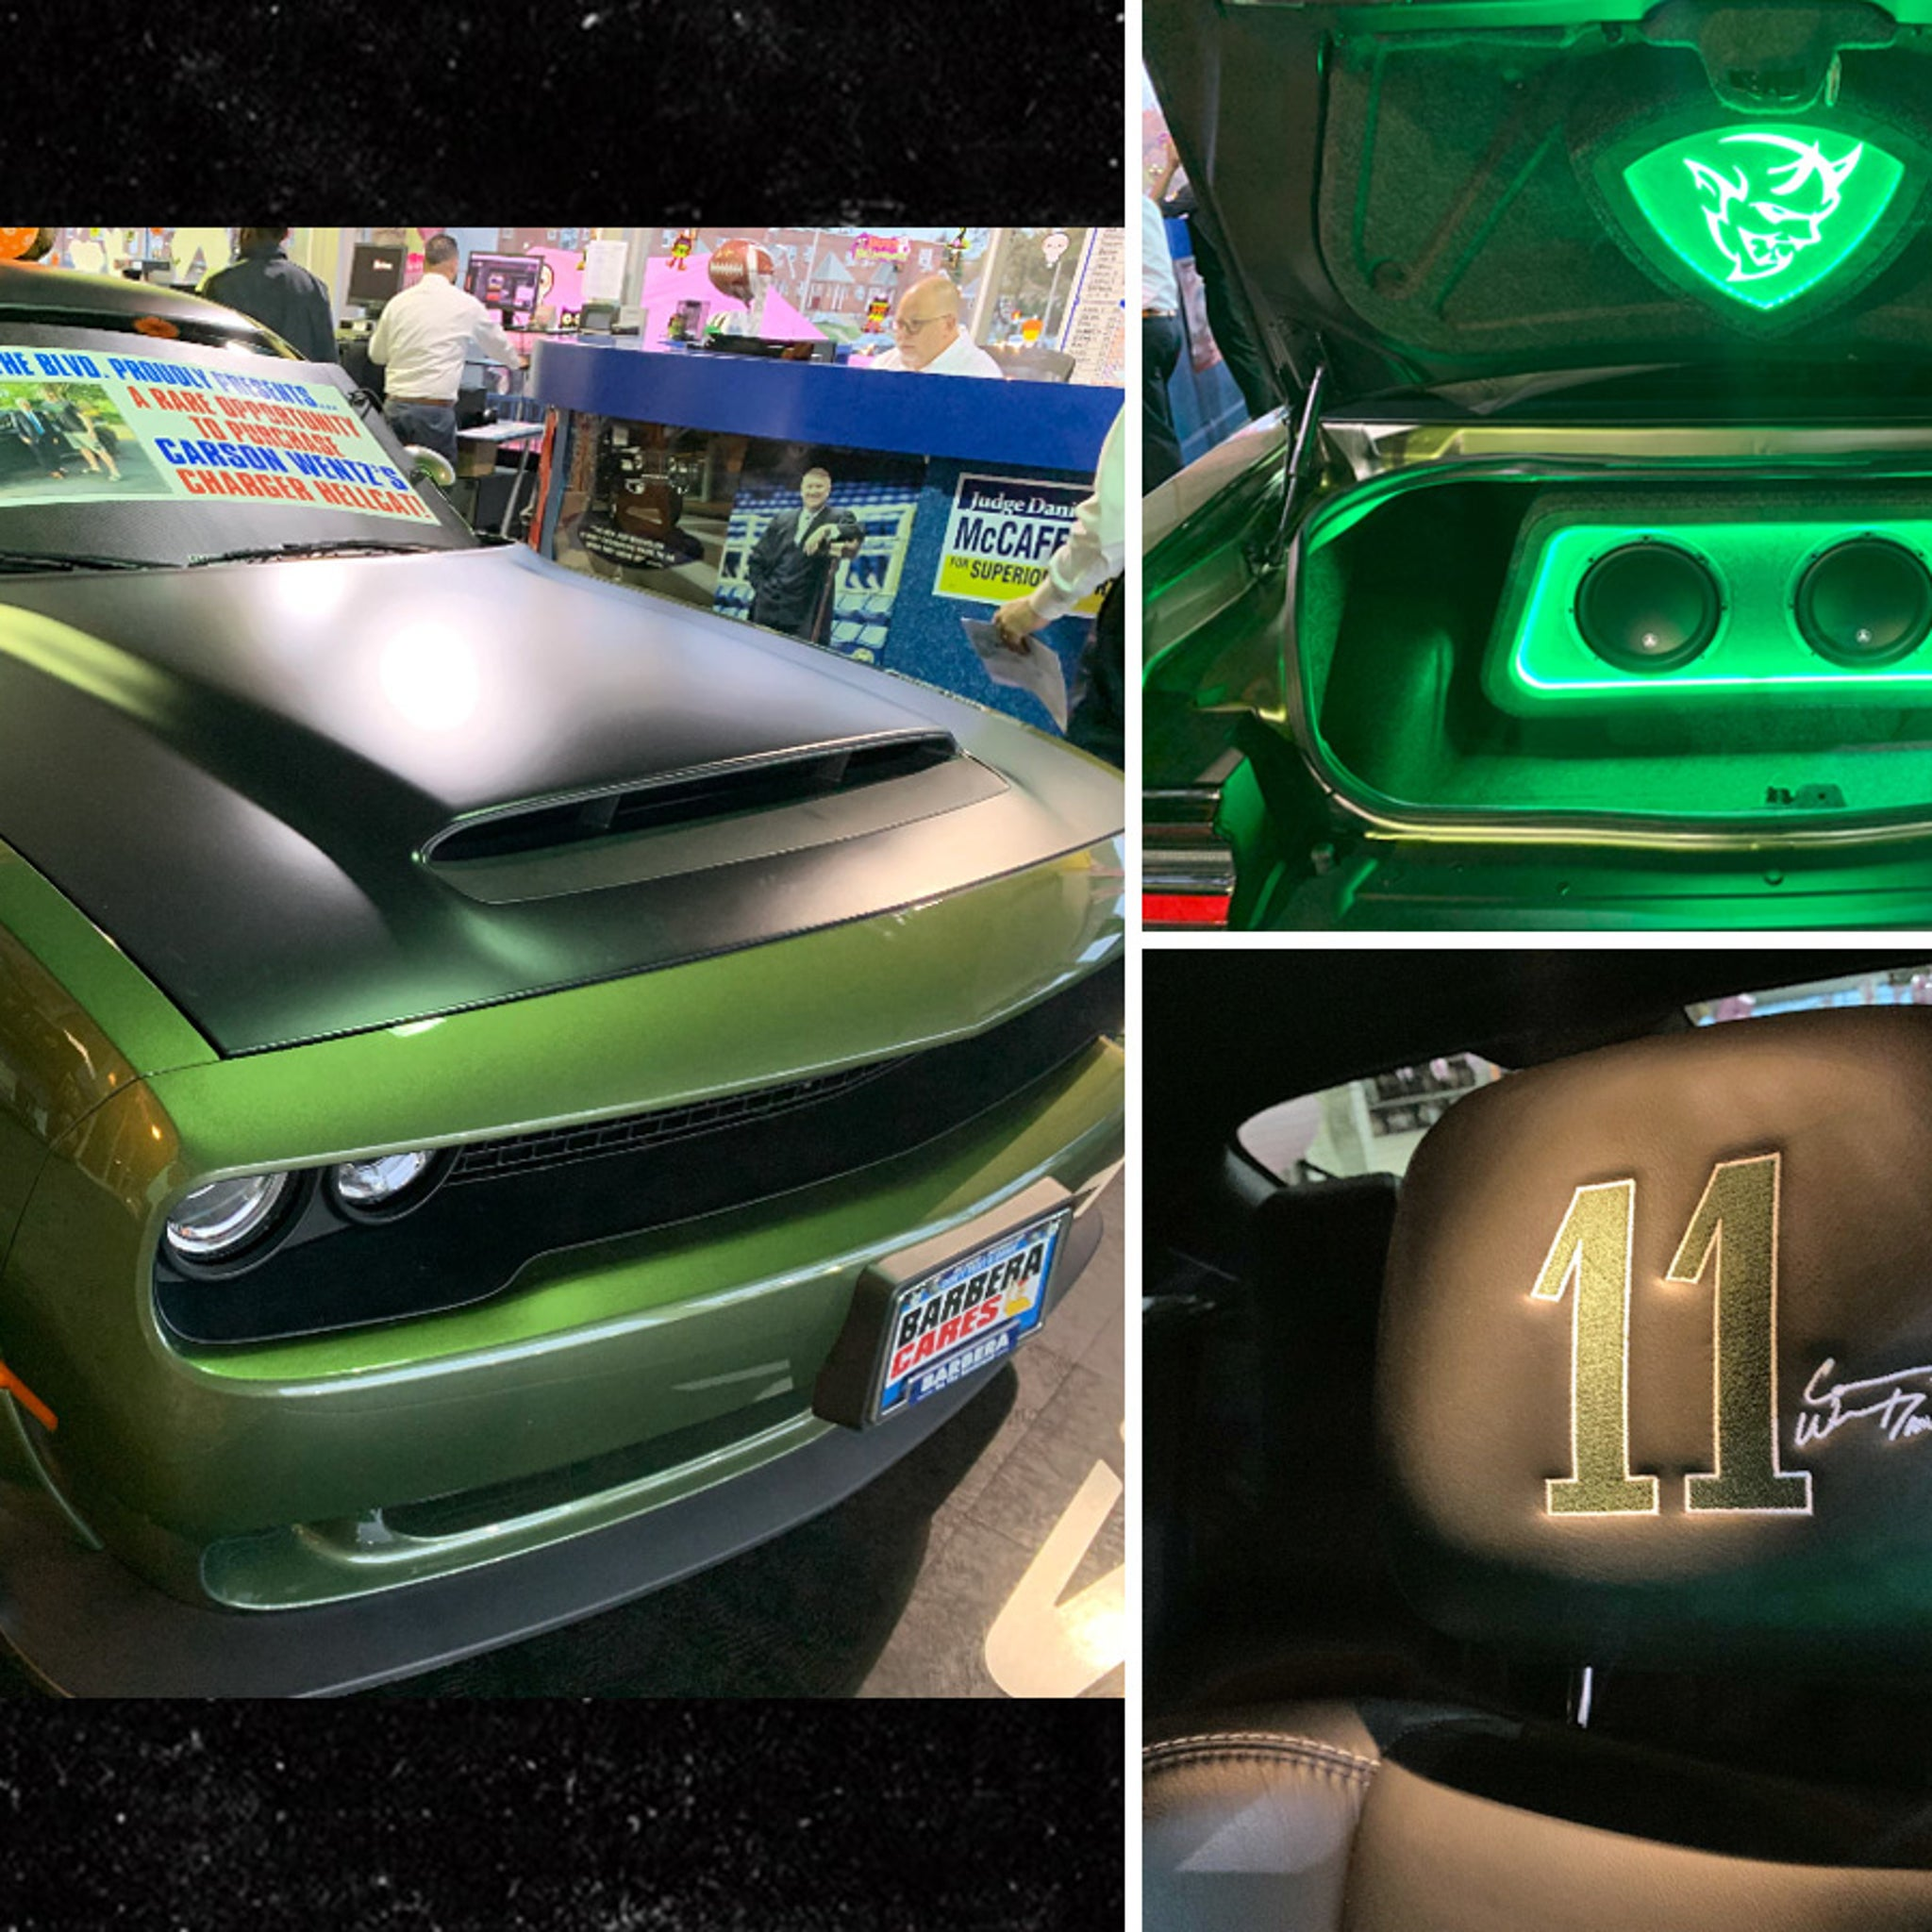 Carson Wentz Selling Custom Eagles Car Pimped Out Green Dodge Challenger